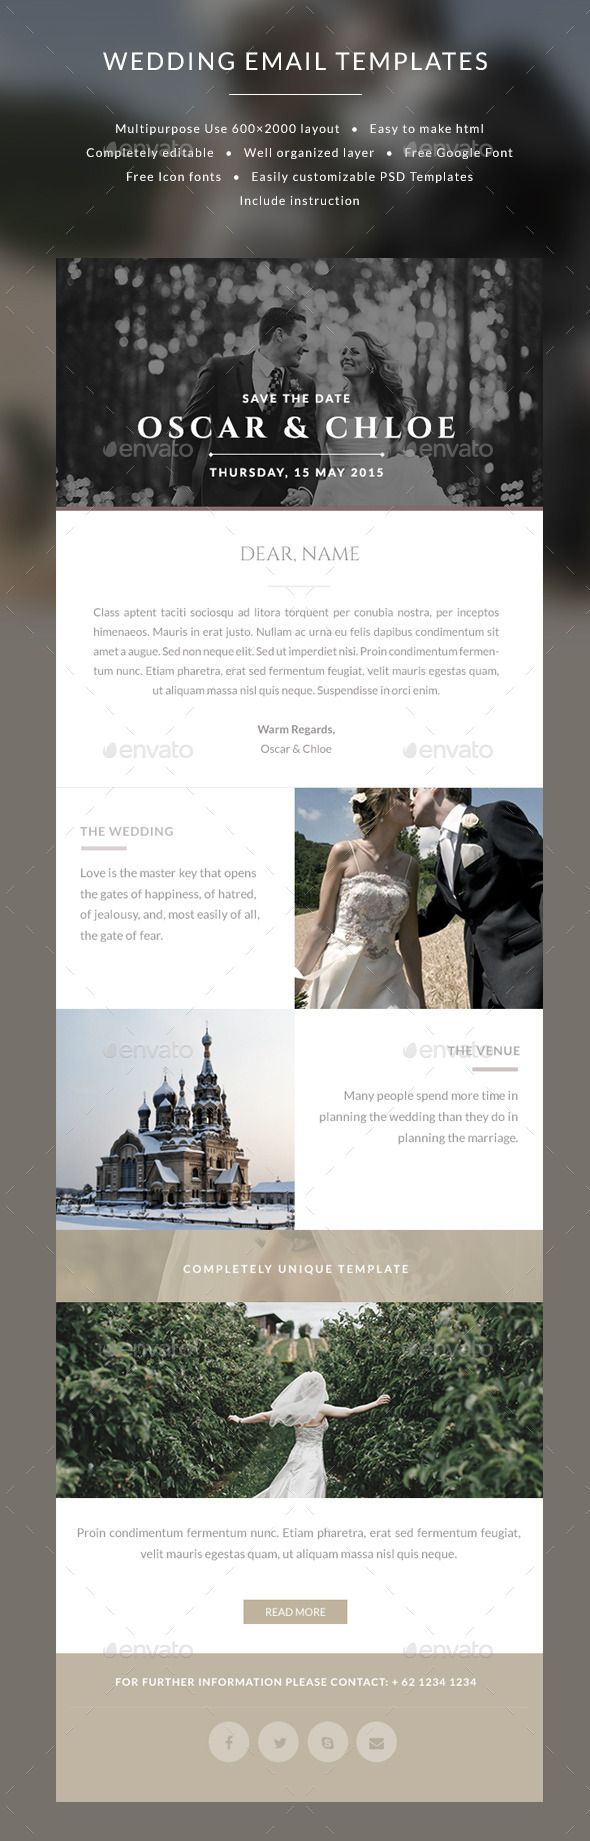 best ideas about wedding invitation templates email wedding invitation templates oscar